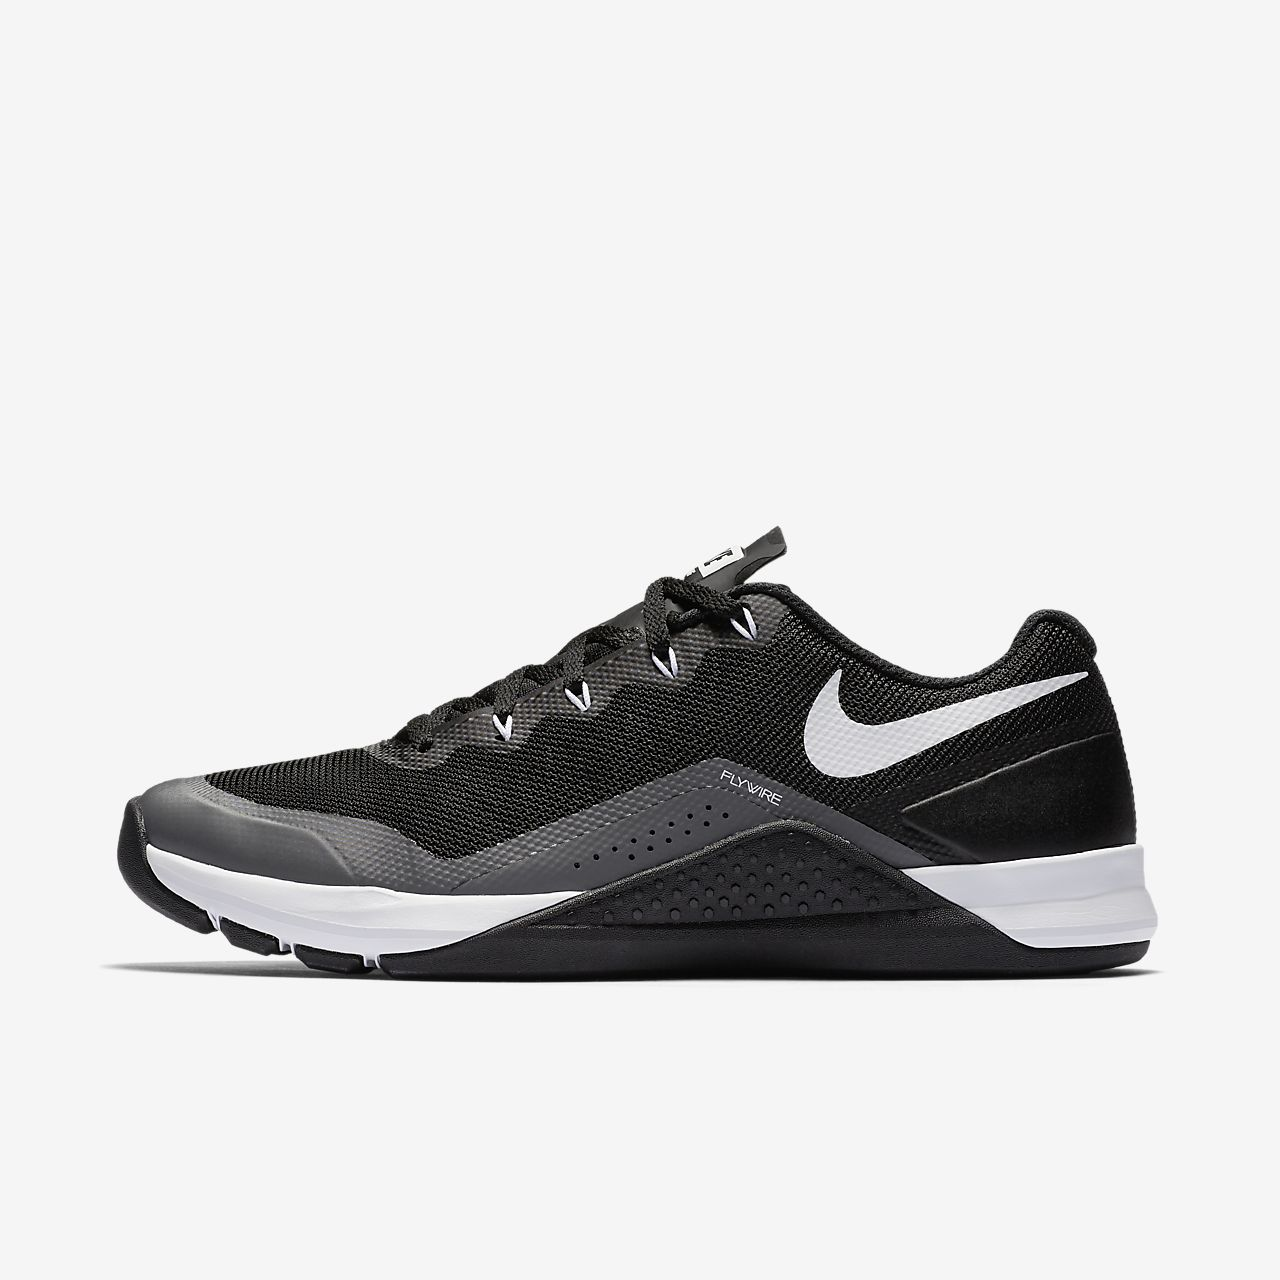 nike shoes used 10-5000mcb instructions not included 925879